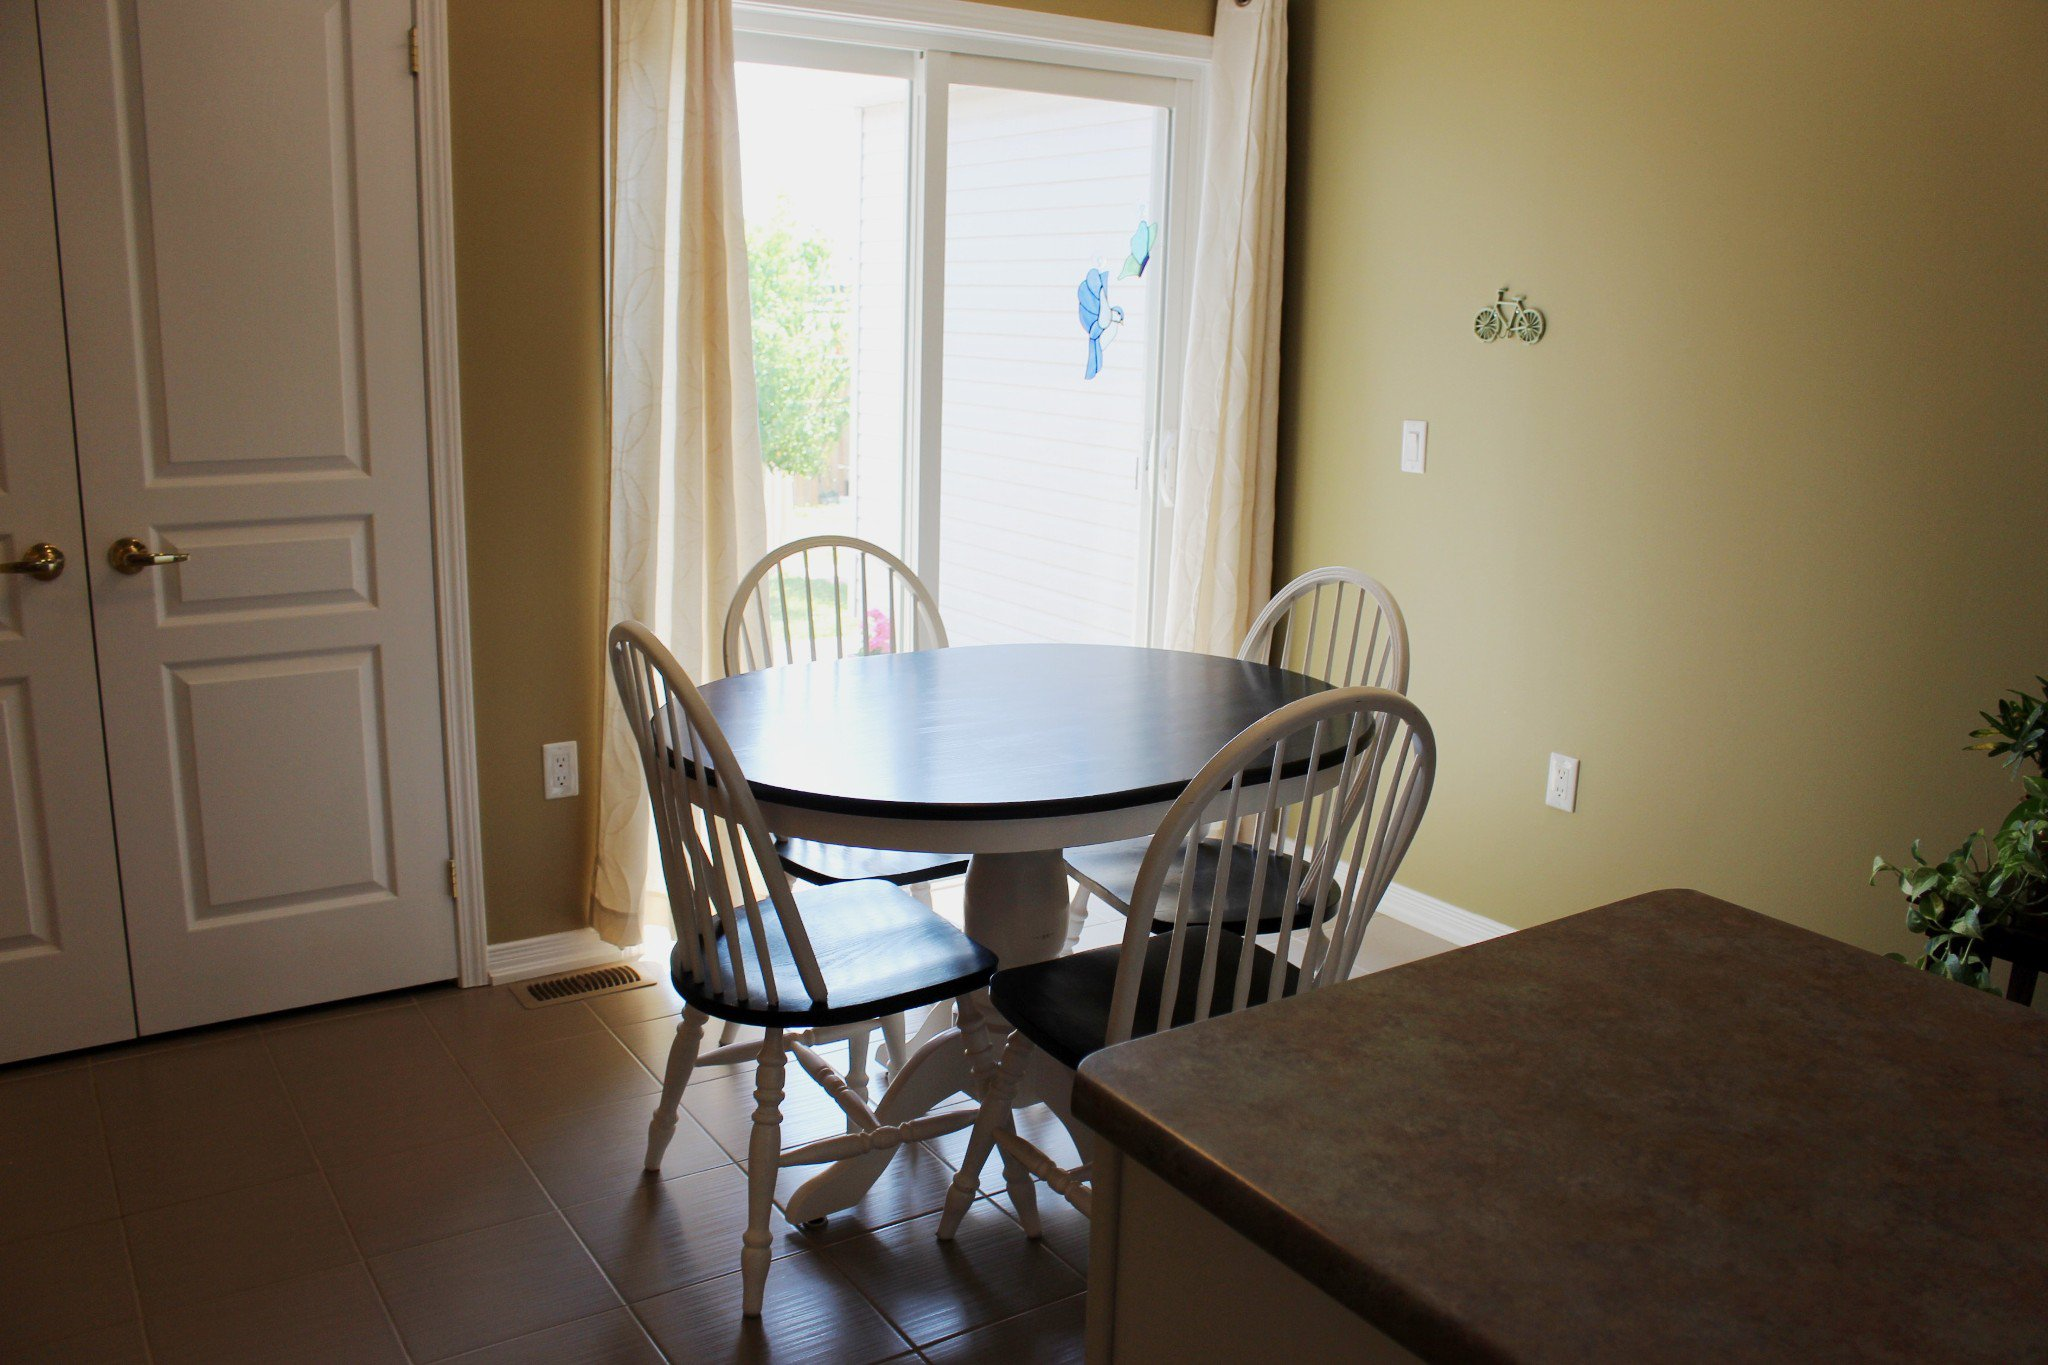 Photo 8: Photos: 831 Leslie Street in Cobourg: Residential Attached for sale : MLS®# 138391